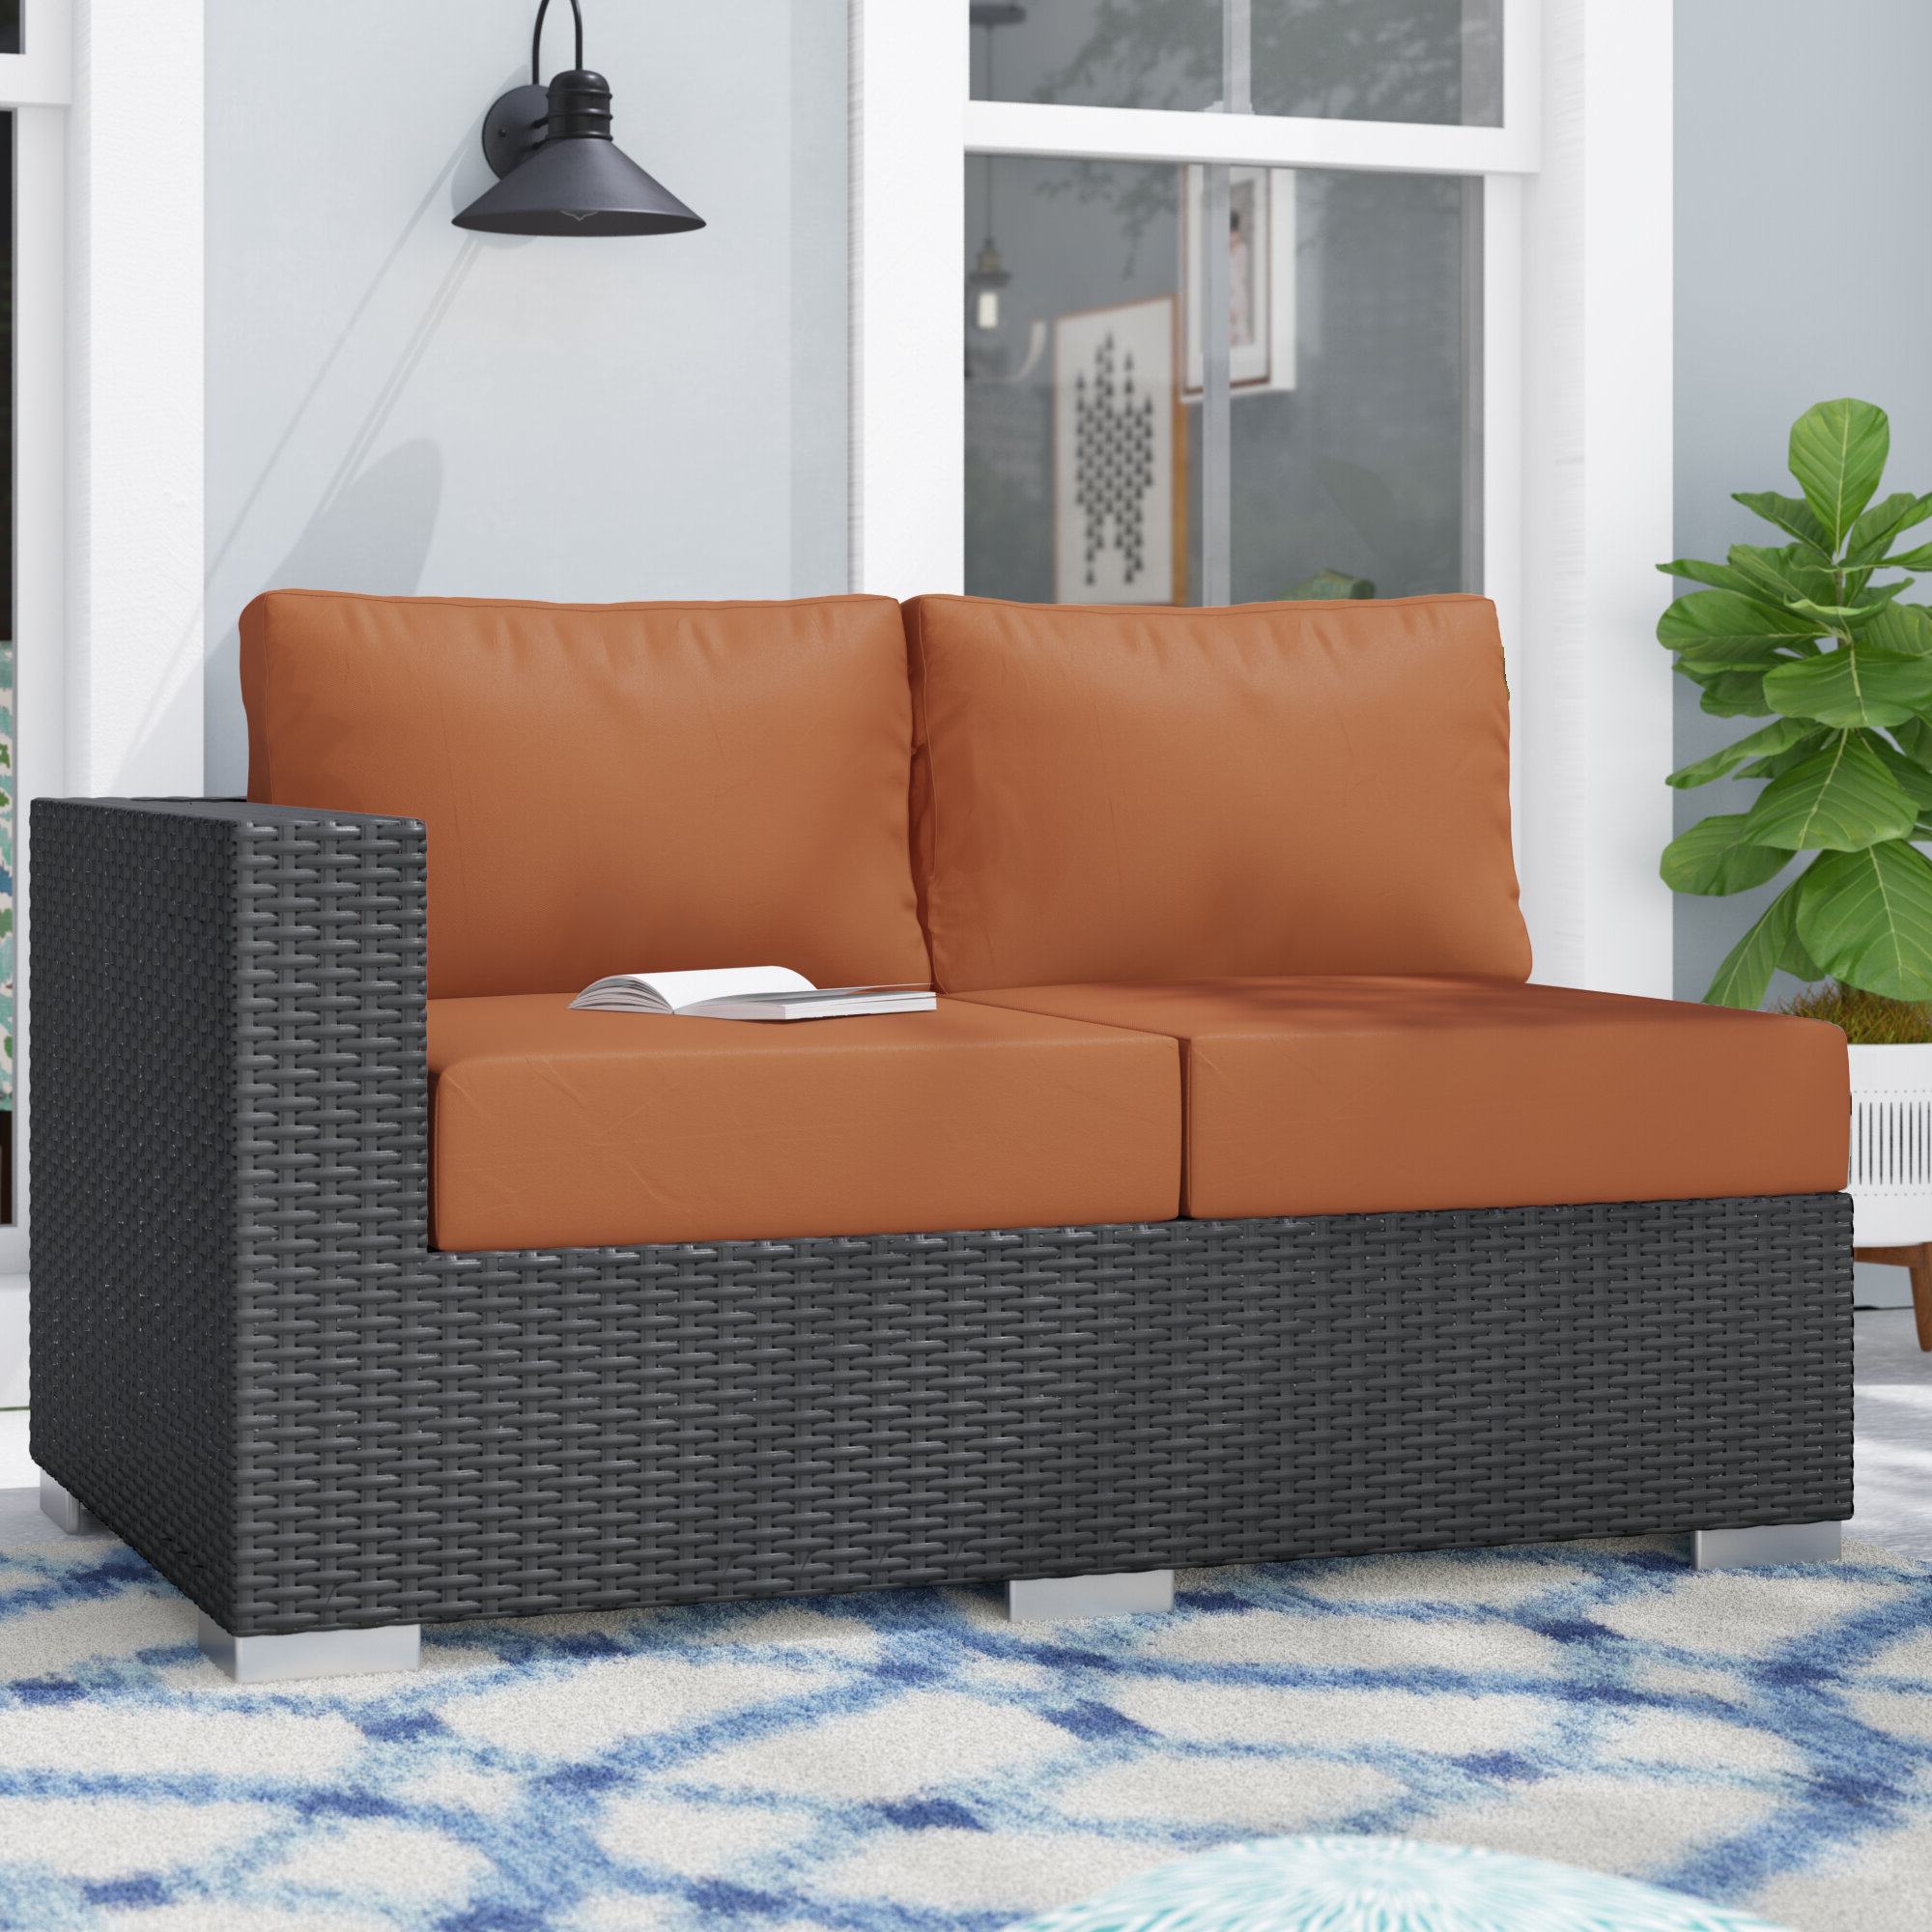 Tripp Right Arm Loveseat Sectional Piece With Cushions Intended For Recent Tripp Sofa With Cushions (View 9 of 20)